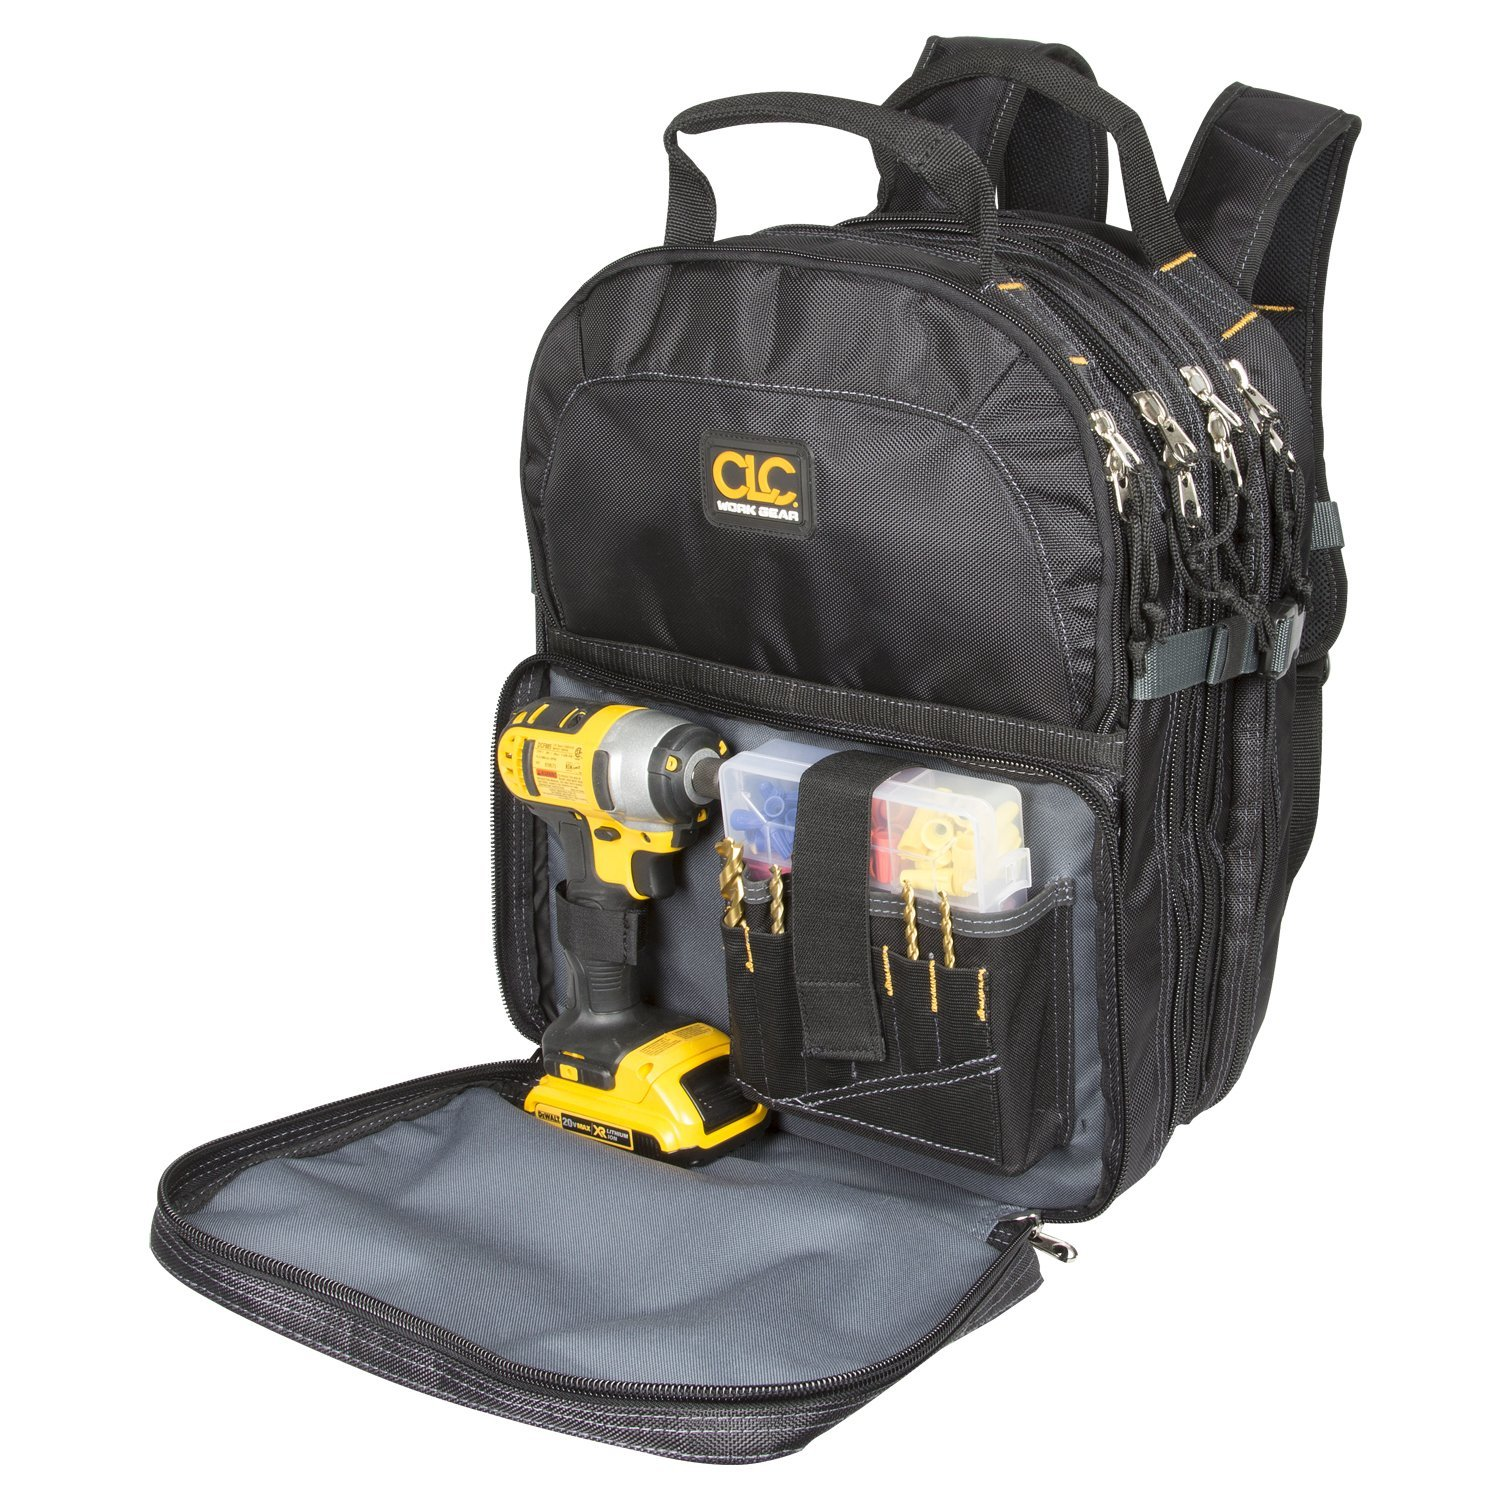 best tool backpack The Most Convenient Tool Backpack: Custom LeatherCraft 1132 75-Pocket Tool Backpack.